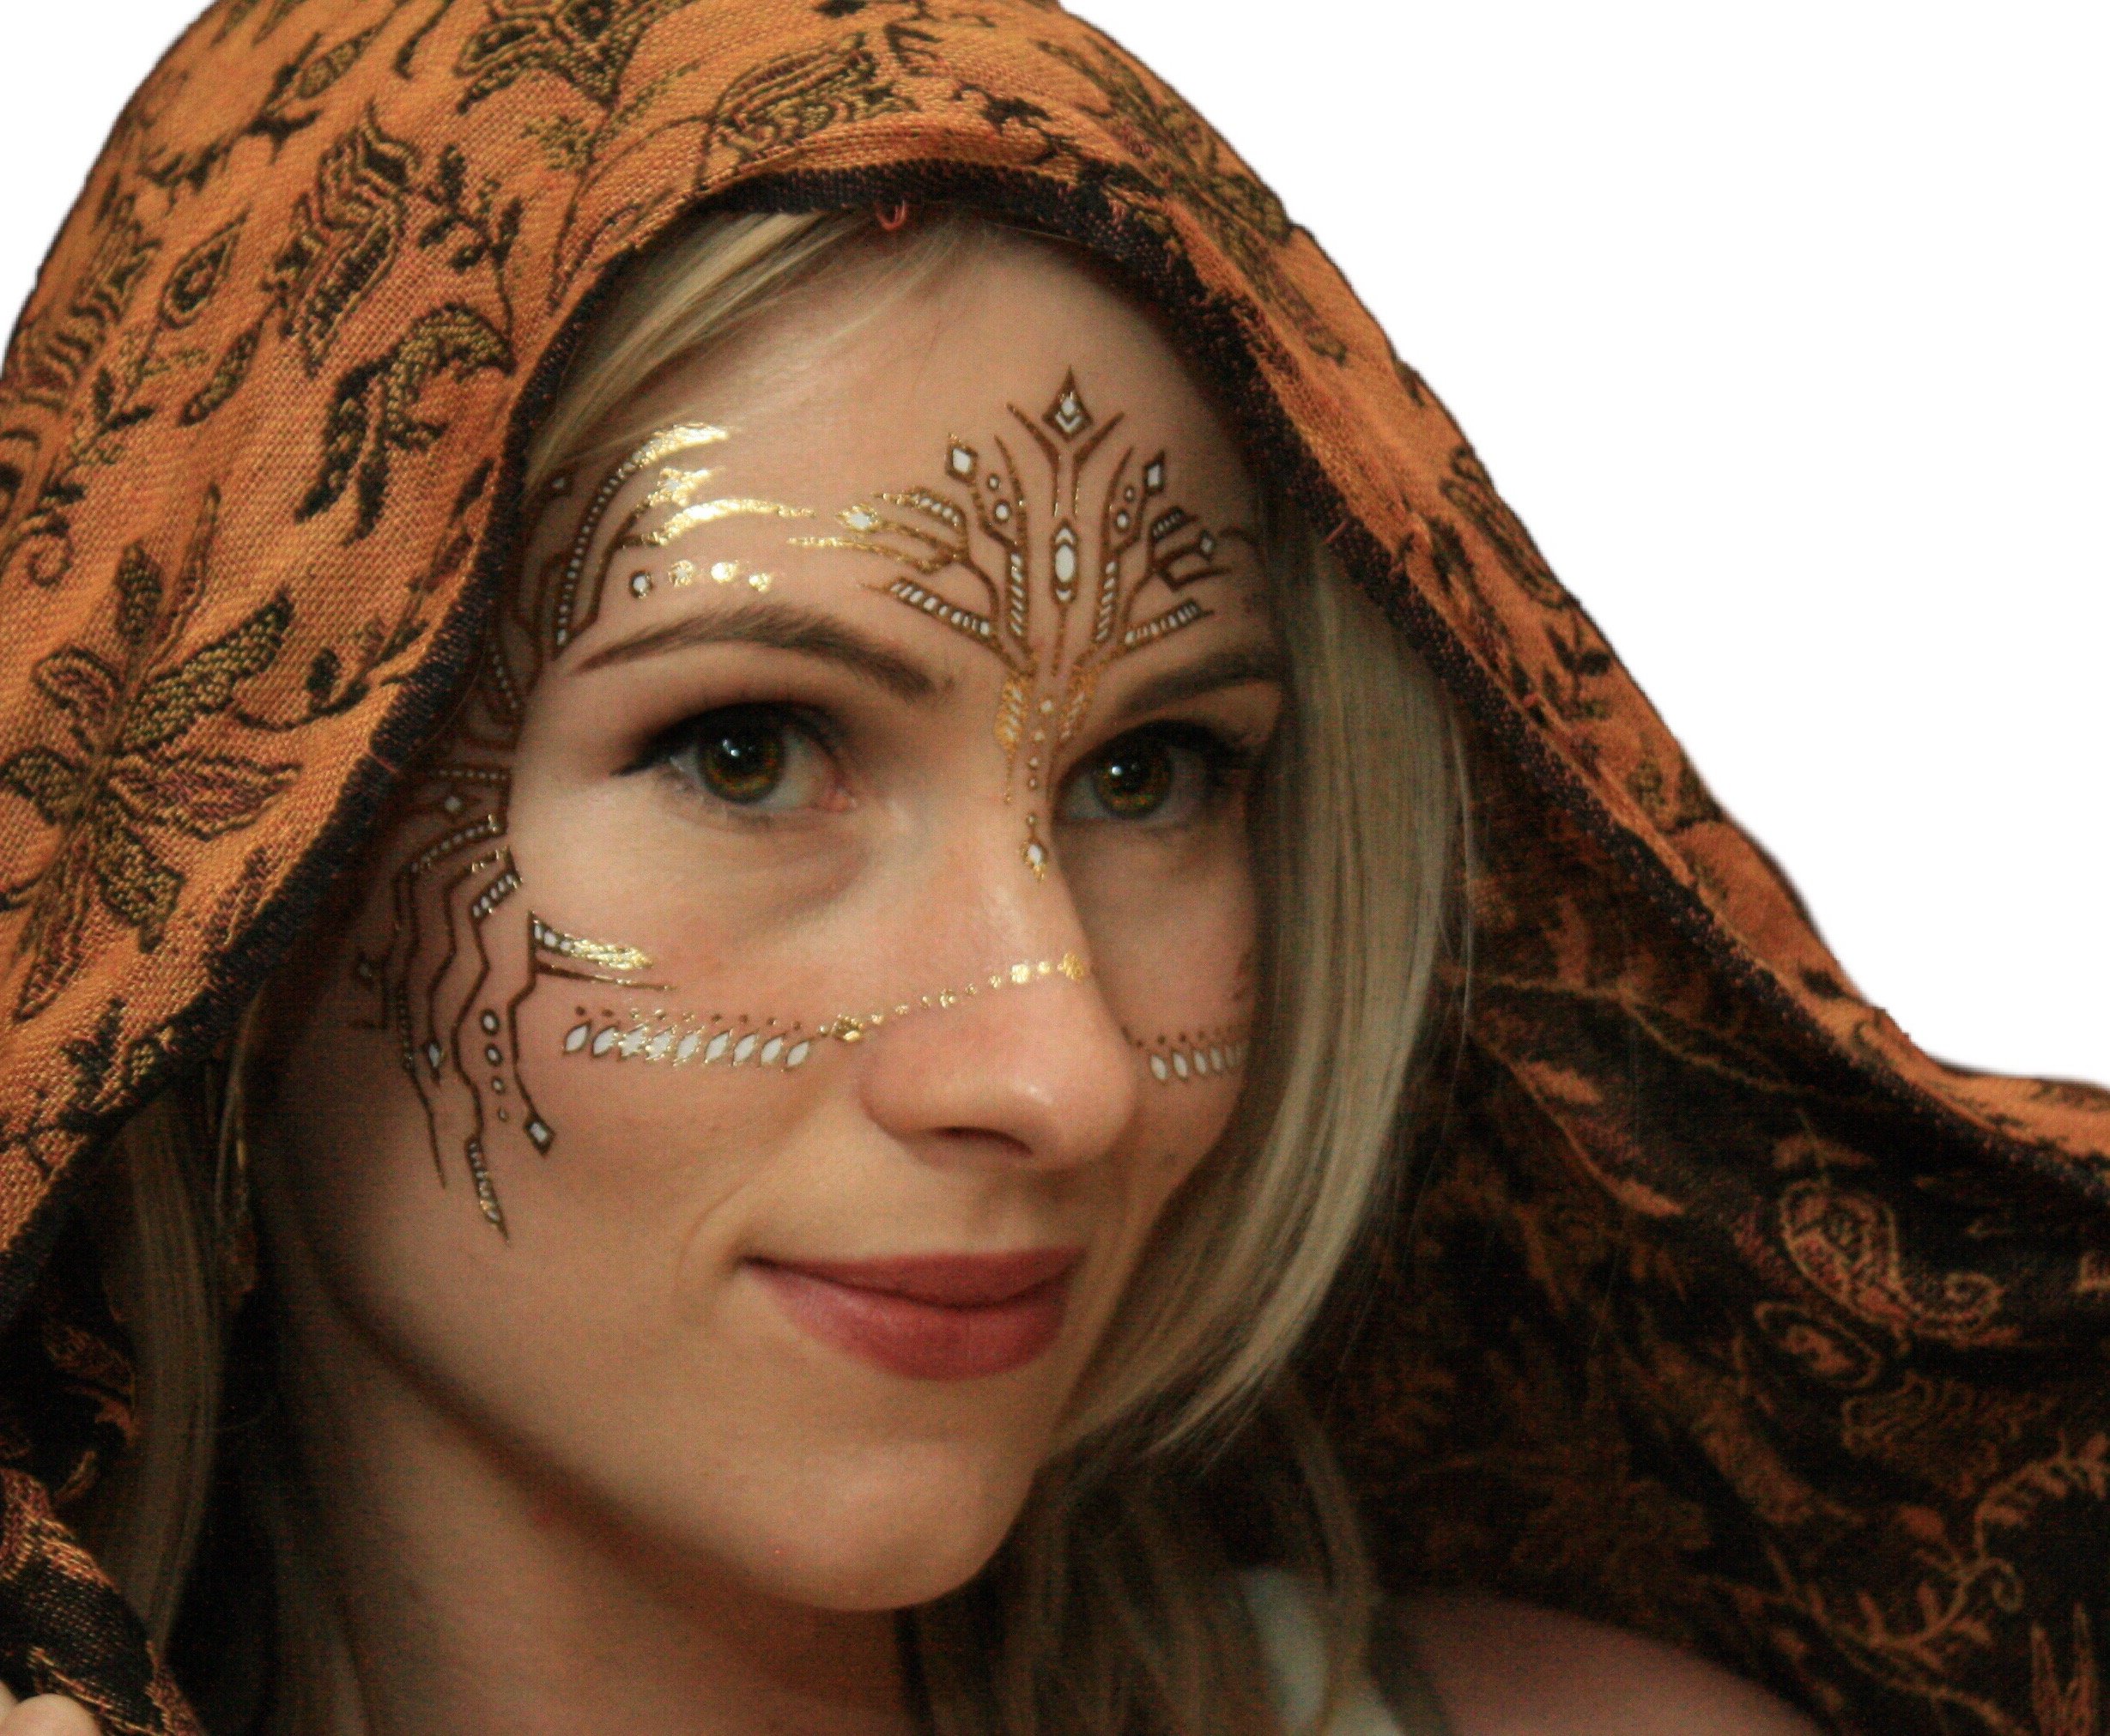 Gold Temporary Tattoos by Golden Ratio Tats, Festival Face Paint, Gold and White Flash Tattoos (CirquiTree Mask) by Golden Ratio Tats (Image #2)